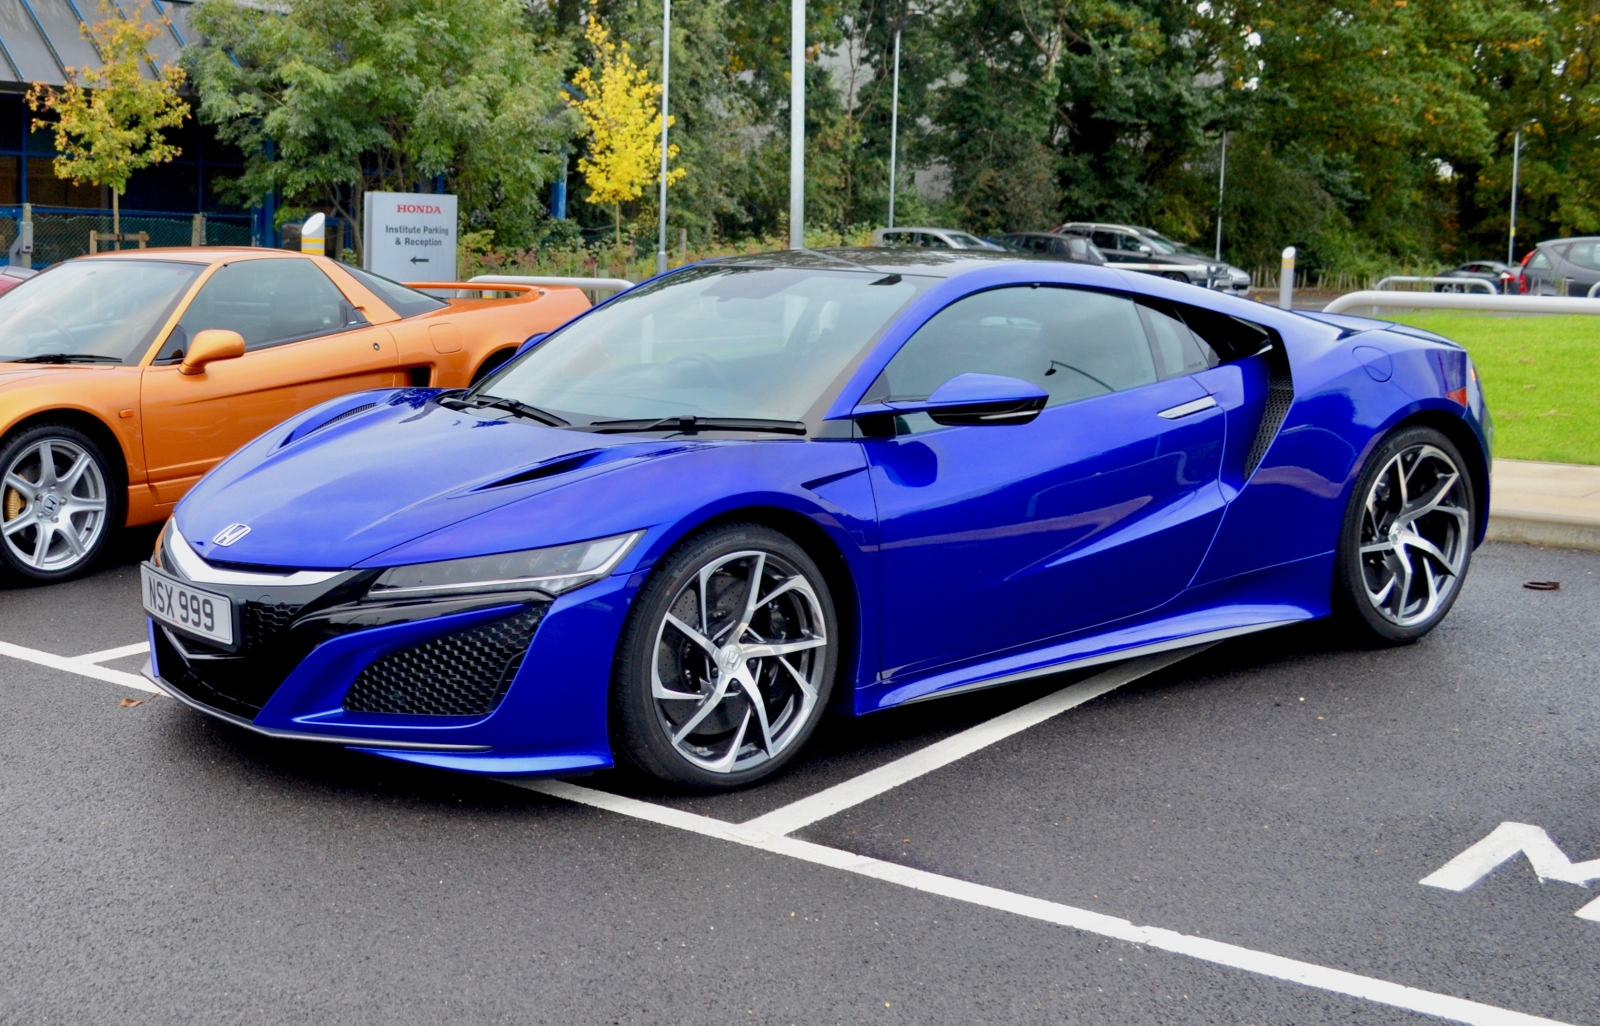 honda nsx review hybrid supercar takes on mclaren and audi. Black Bedroom Furniture Sets. Home Design Ideas